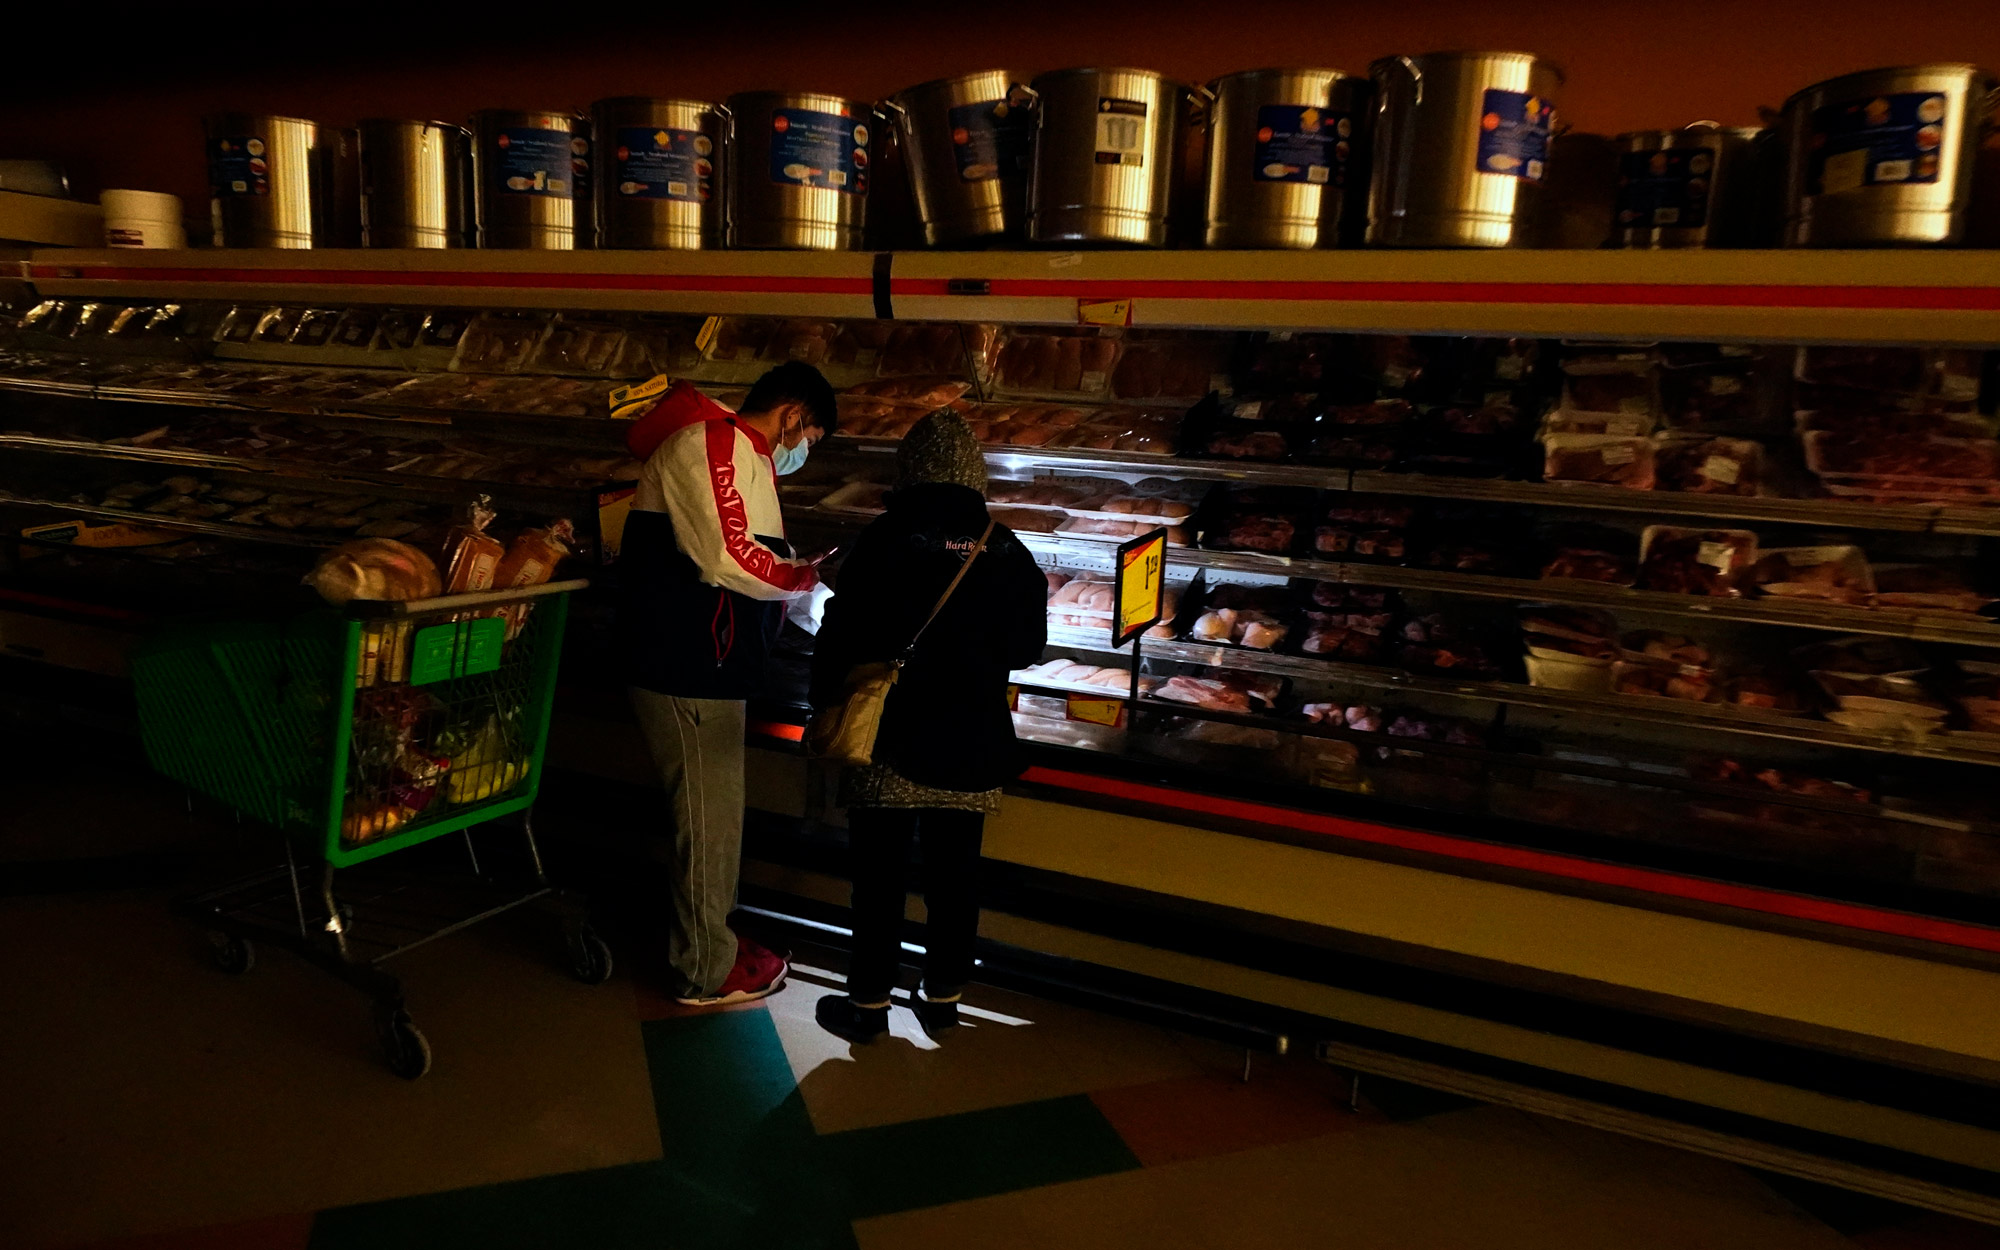 Customers use the light from a cell phone to look in the meat section of a grocery store on February 16 in Dallas, Texas.